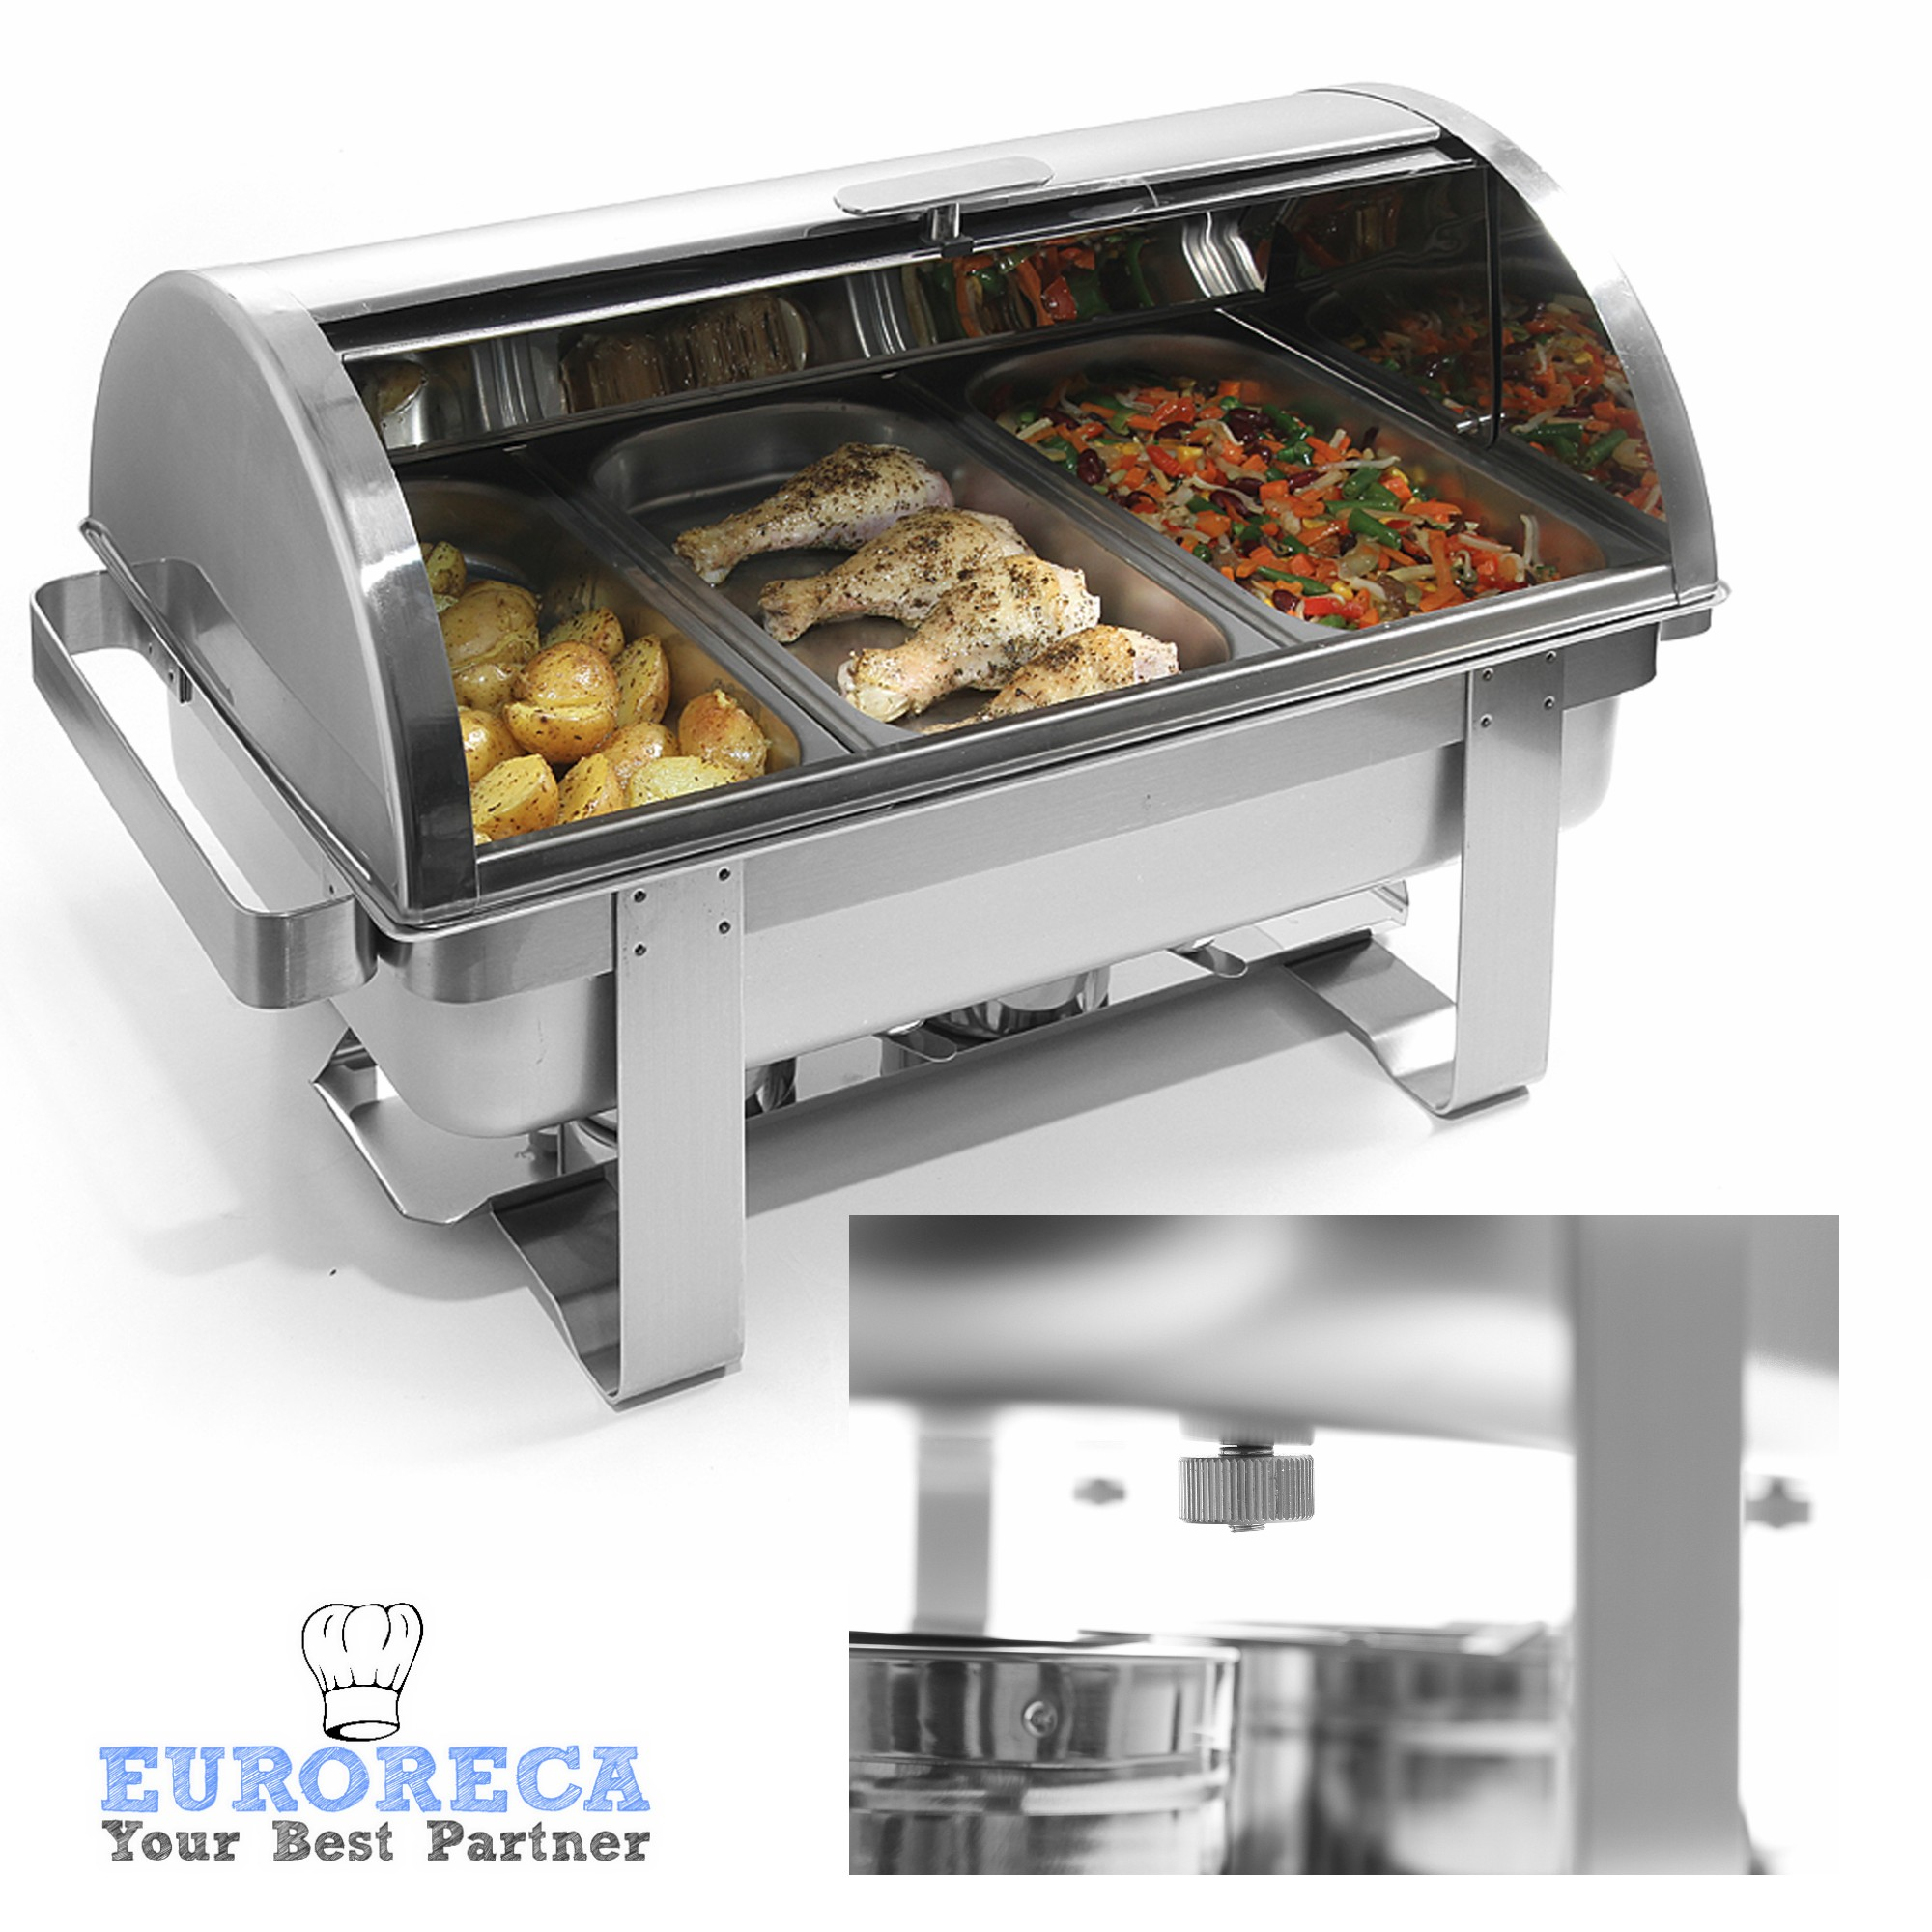 Rolltop-Chafing dish Gastronorme 1/1